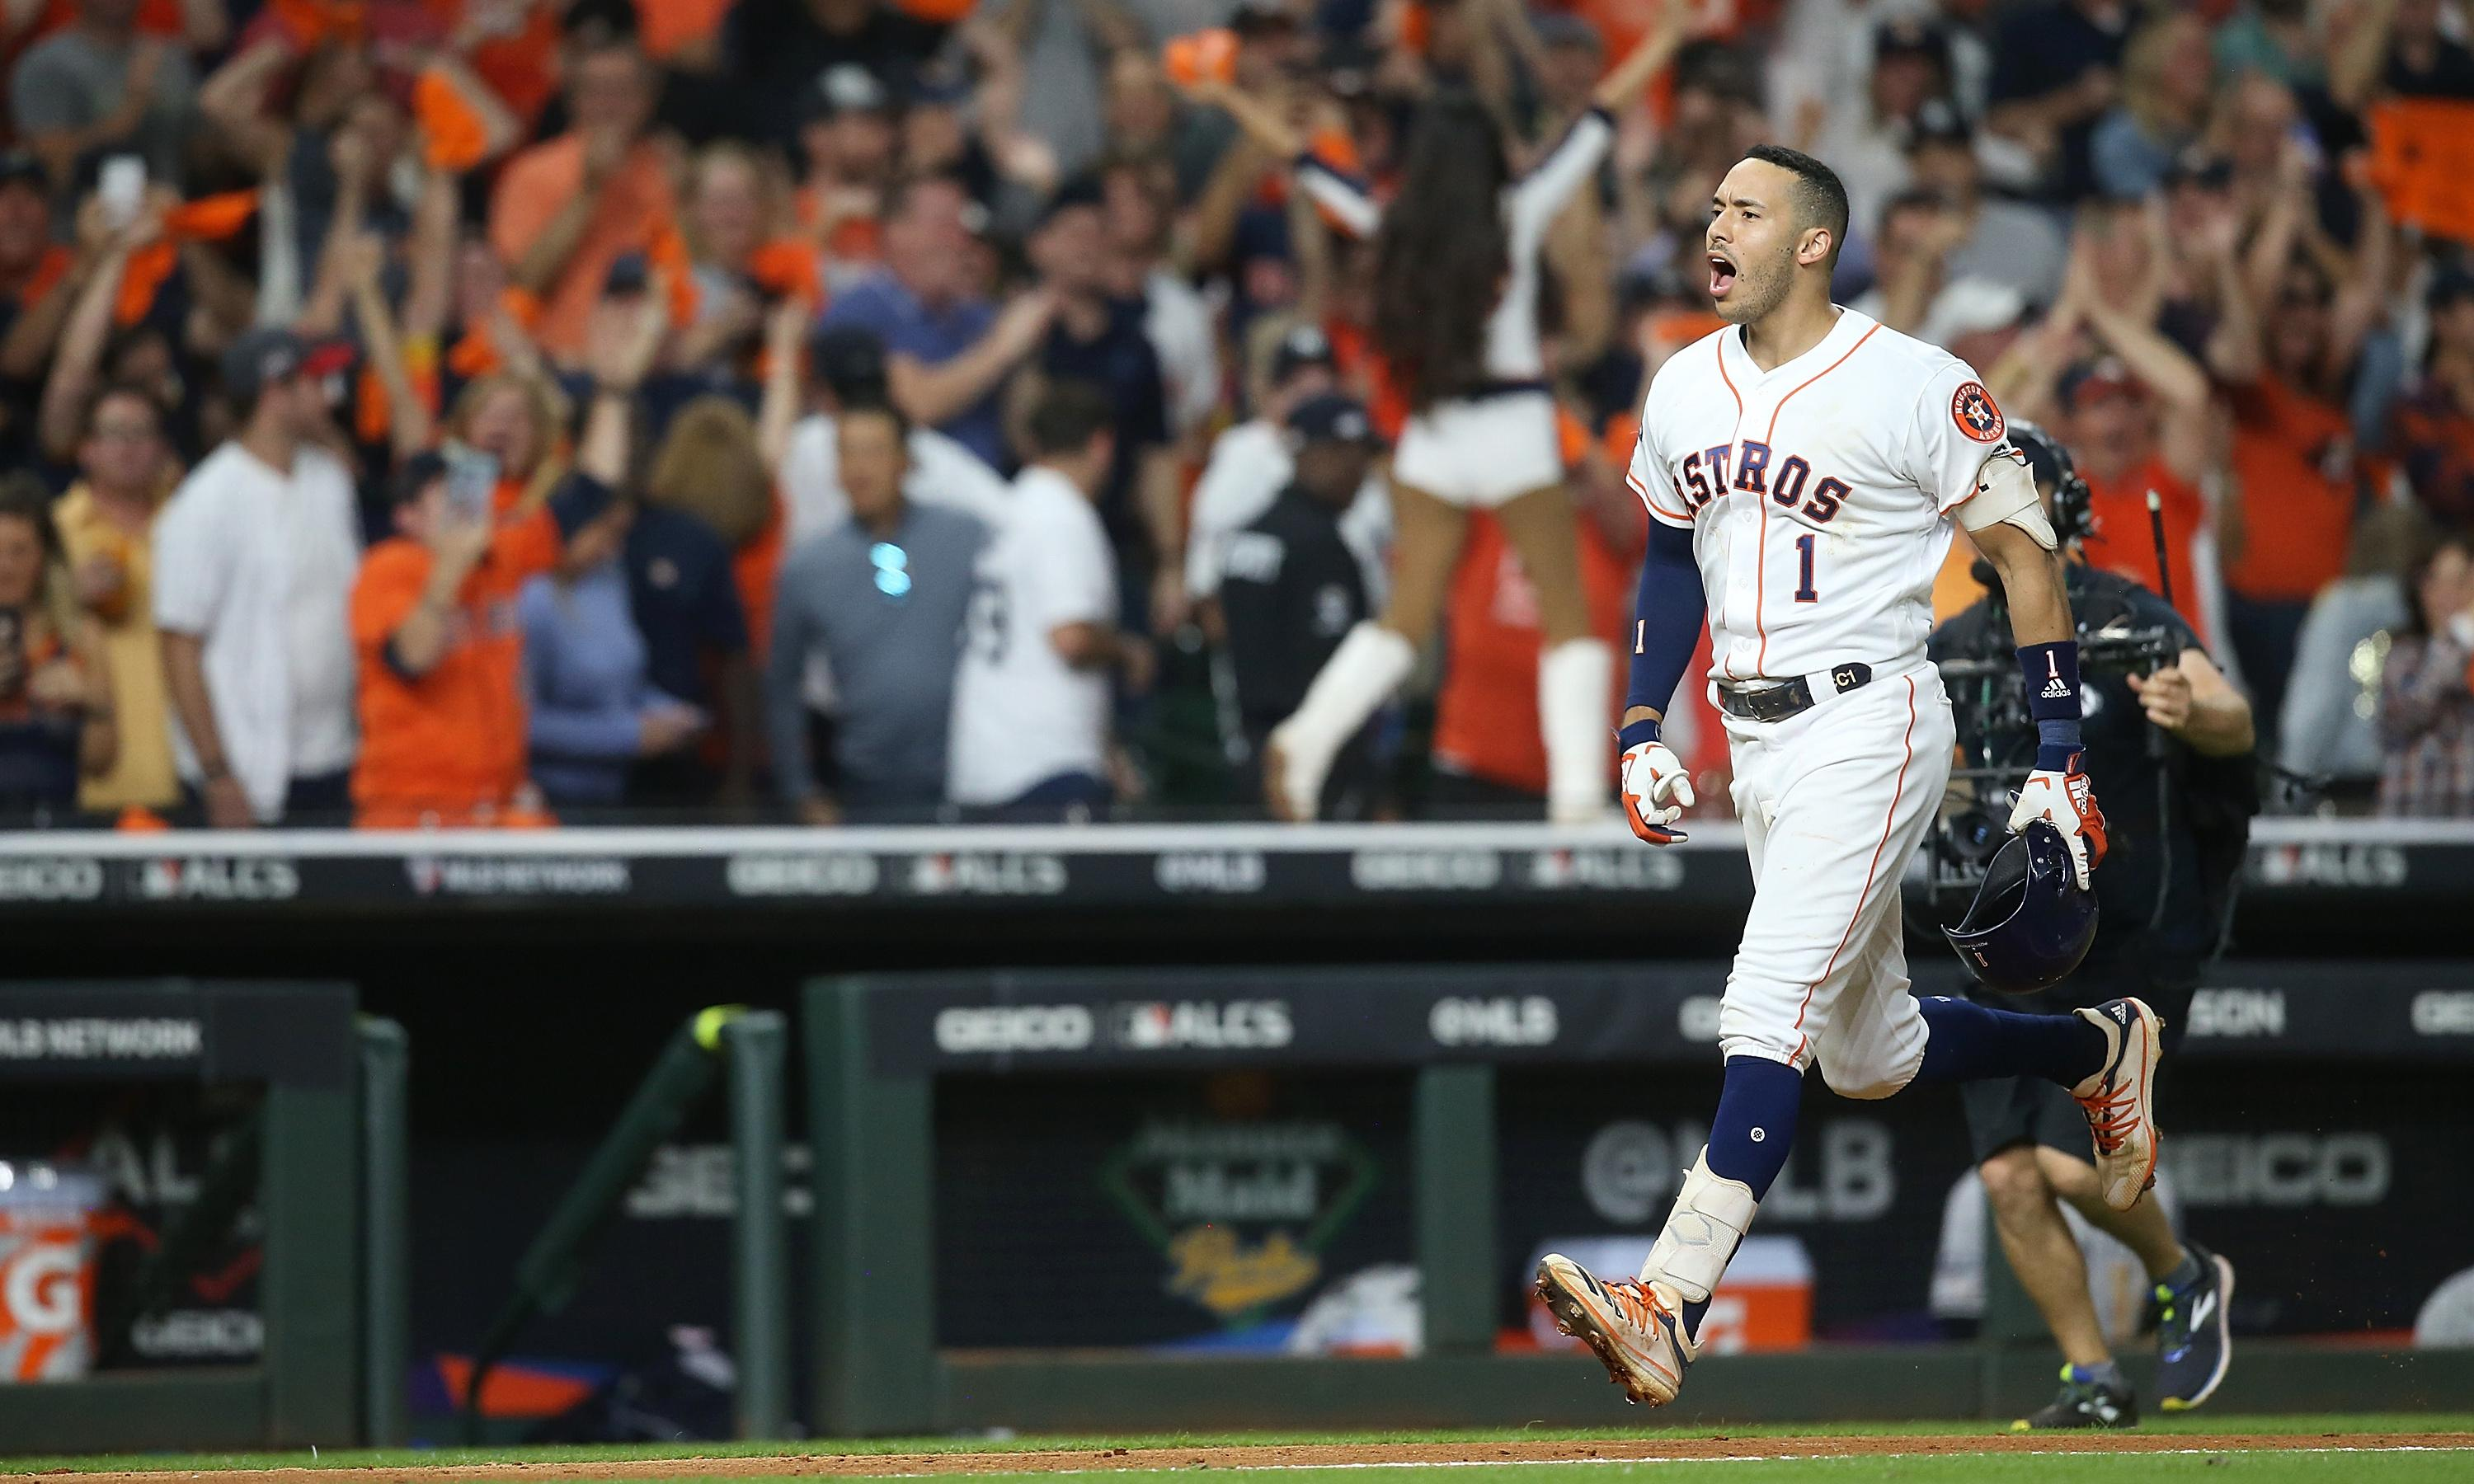 Houston Astros level ALCS with Yankees on Correa's walk-off in 11th